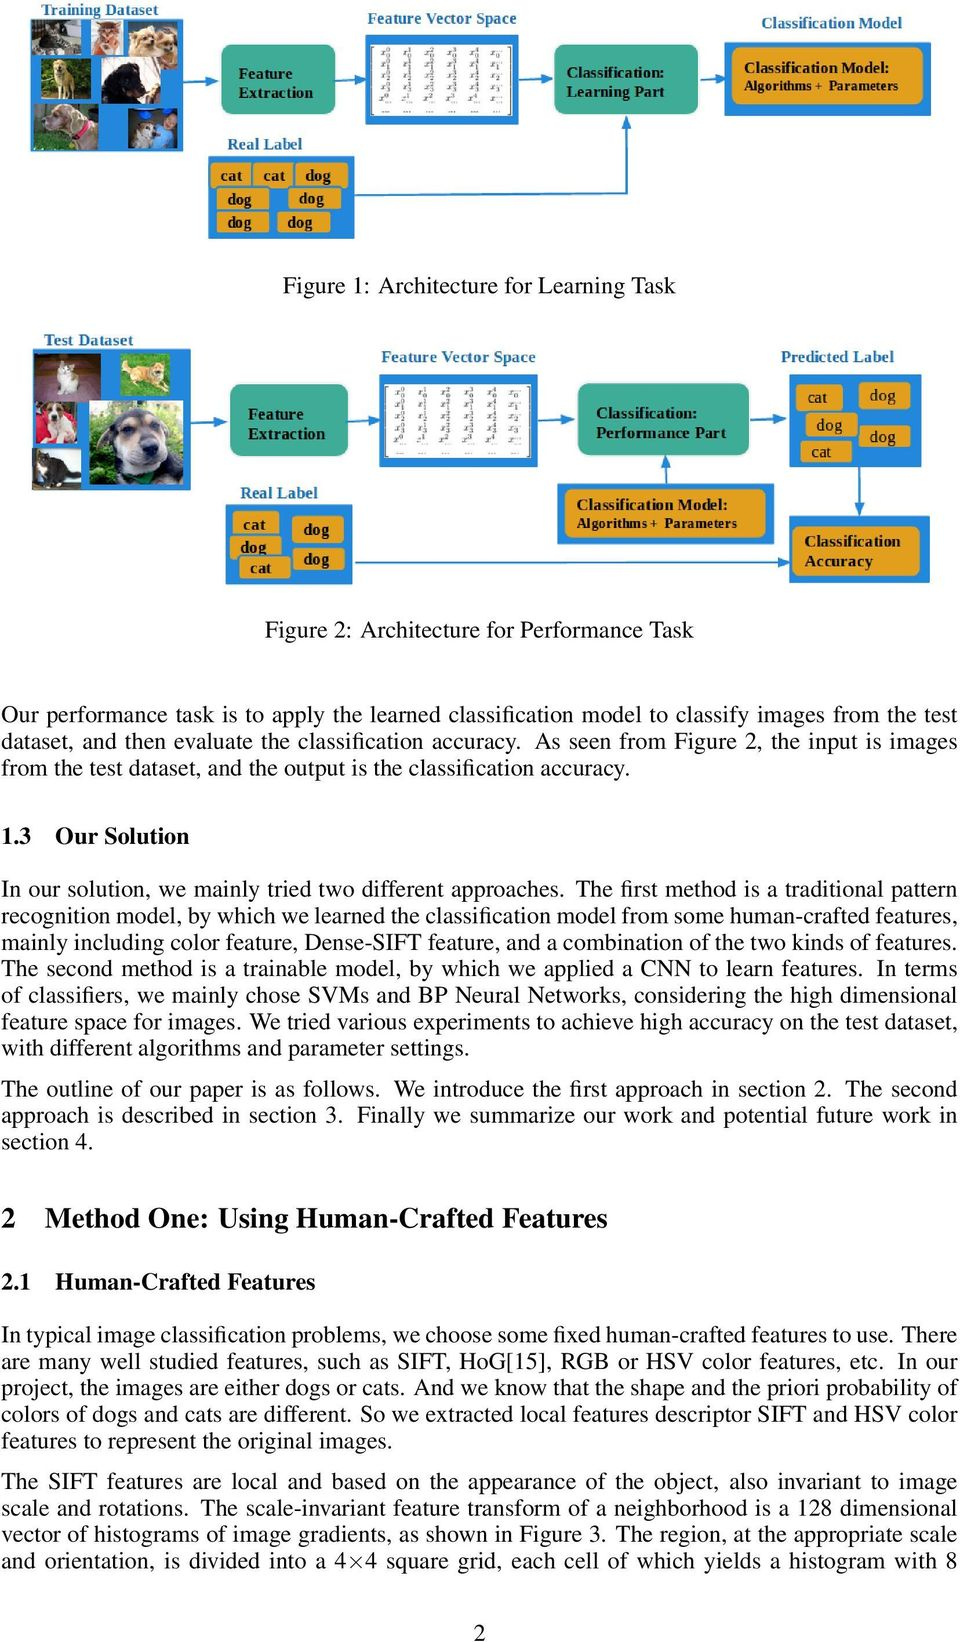 Image Classification for Dogs and Cats - PDF